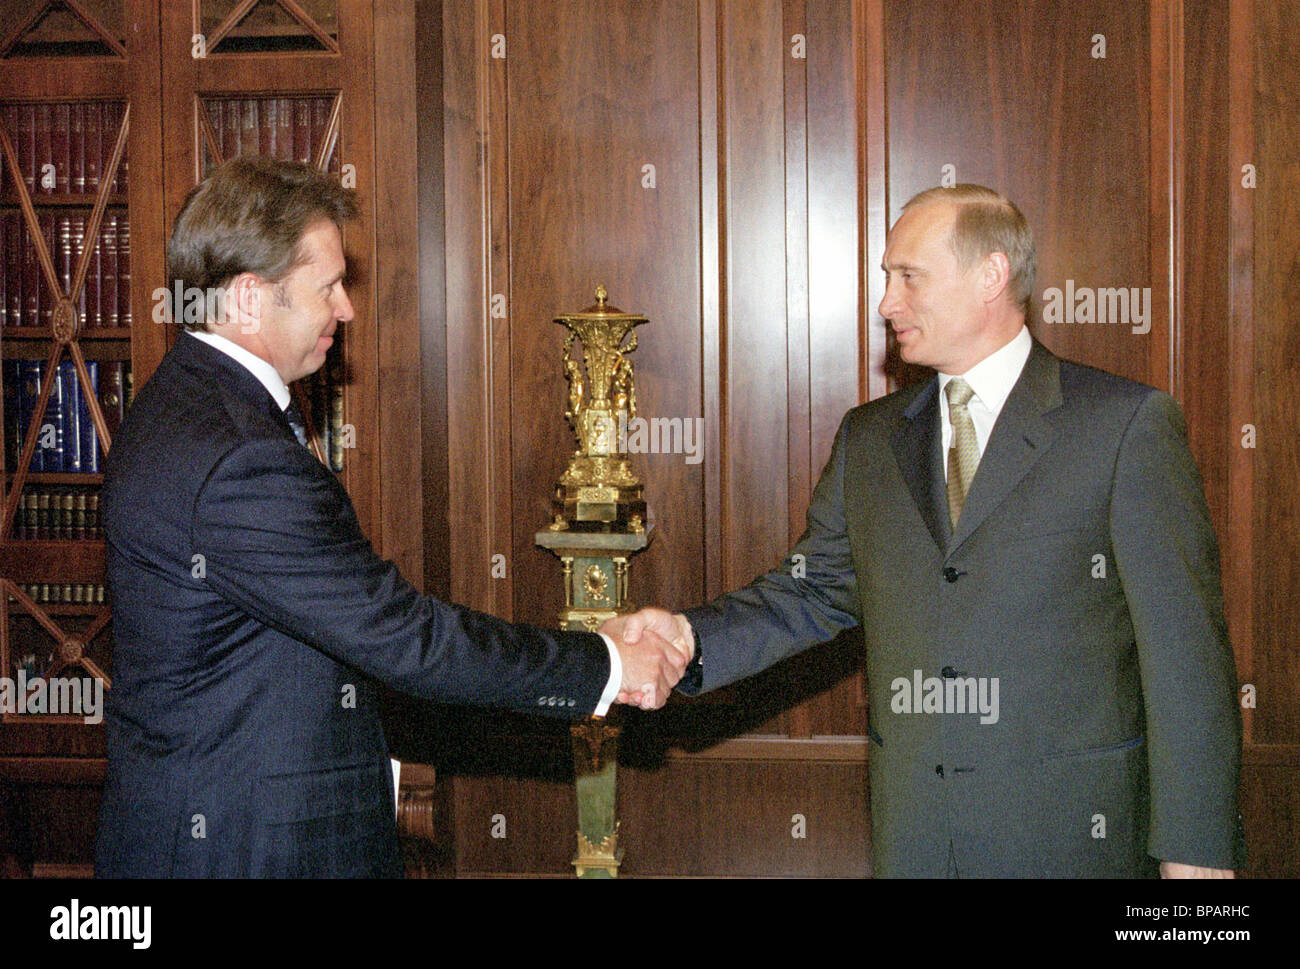 Rosneft president reports to Putin on company's affairs. - Stock Image